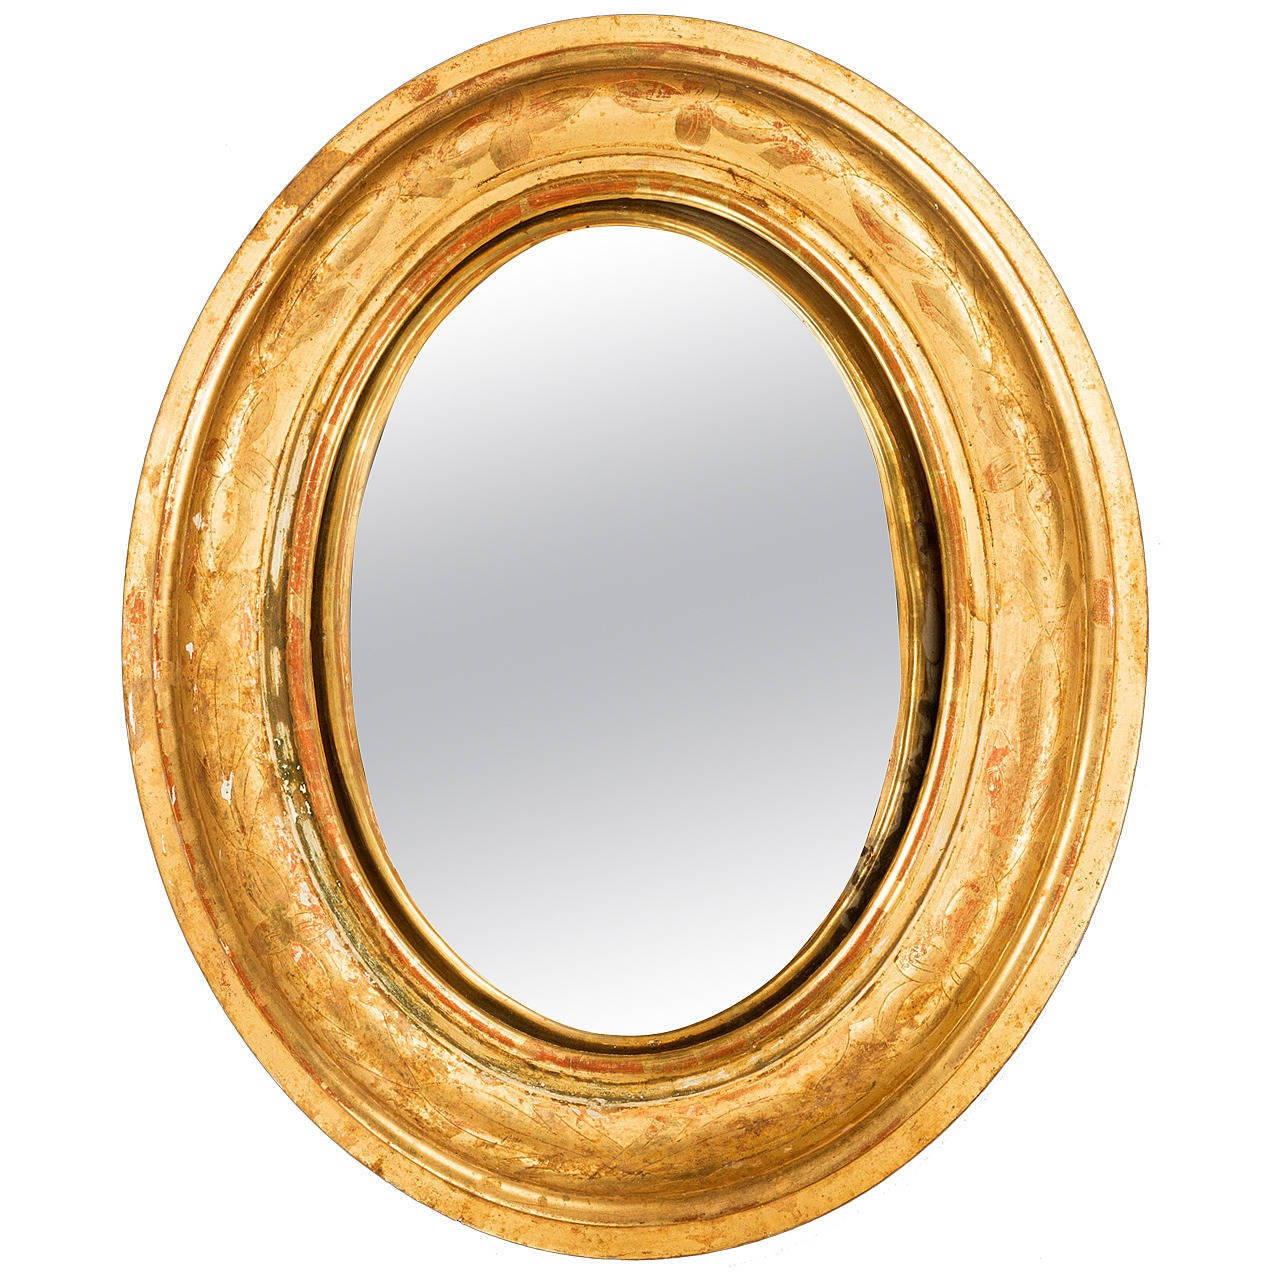 19th century small convex mirror for sale at 1stdibs for Convex mirror for home